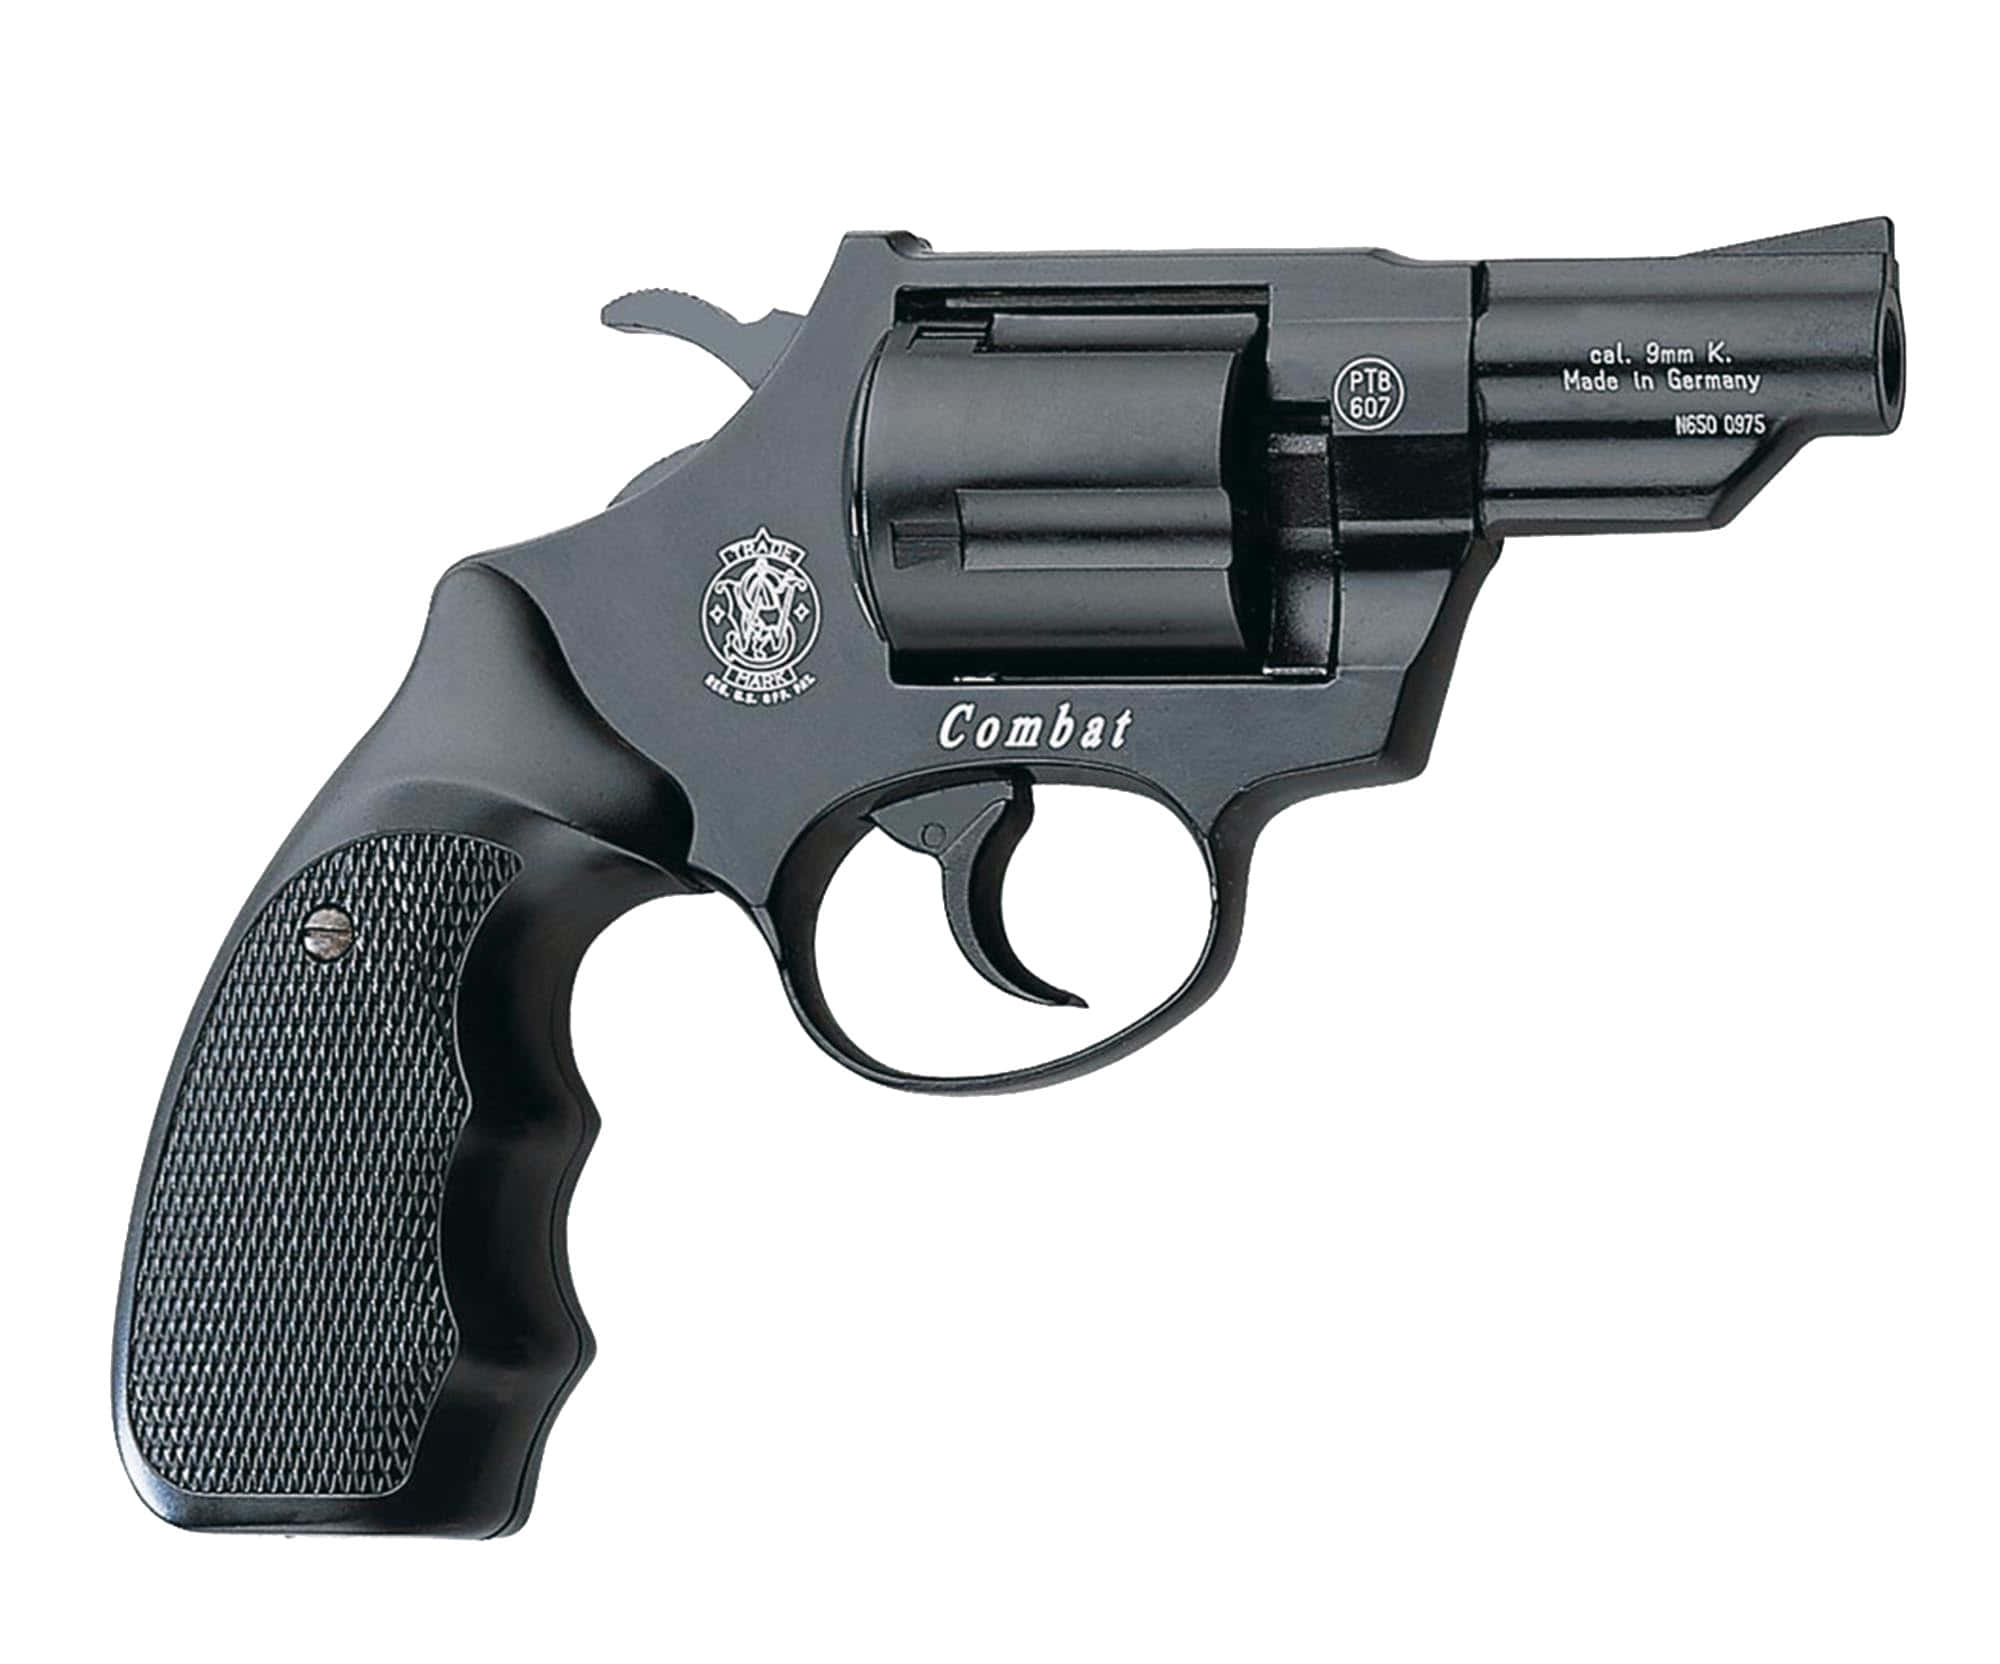 AB163-2 Revolver 9 mm à blanc Smith & Wesson Combat bronzé - AB163